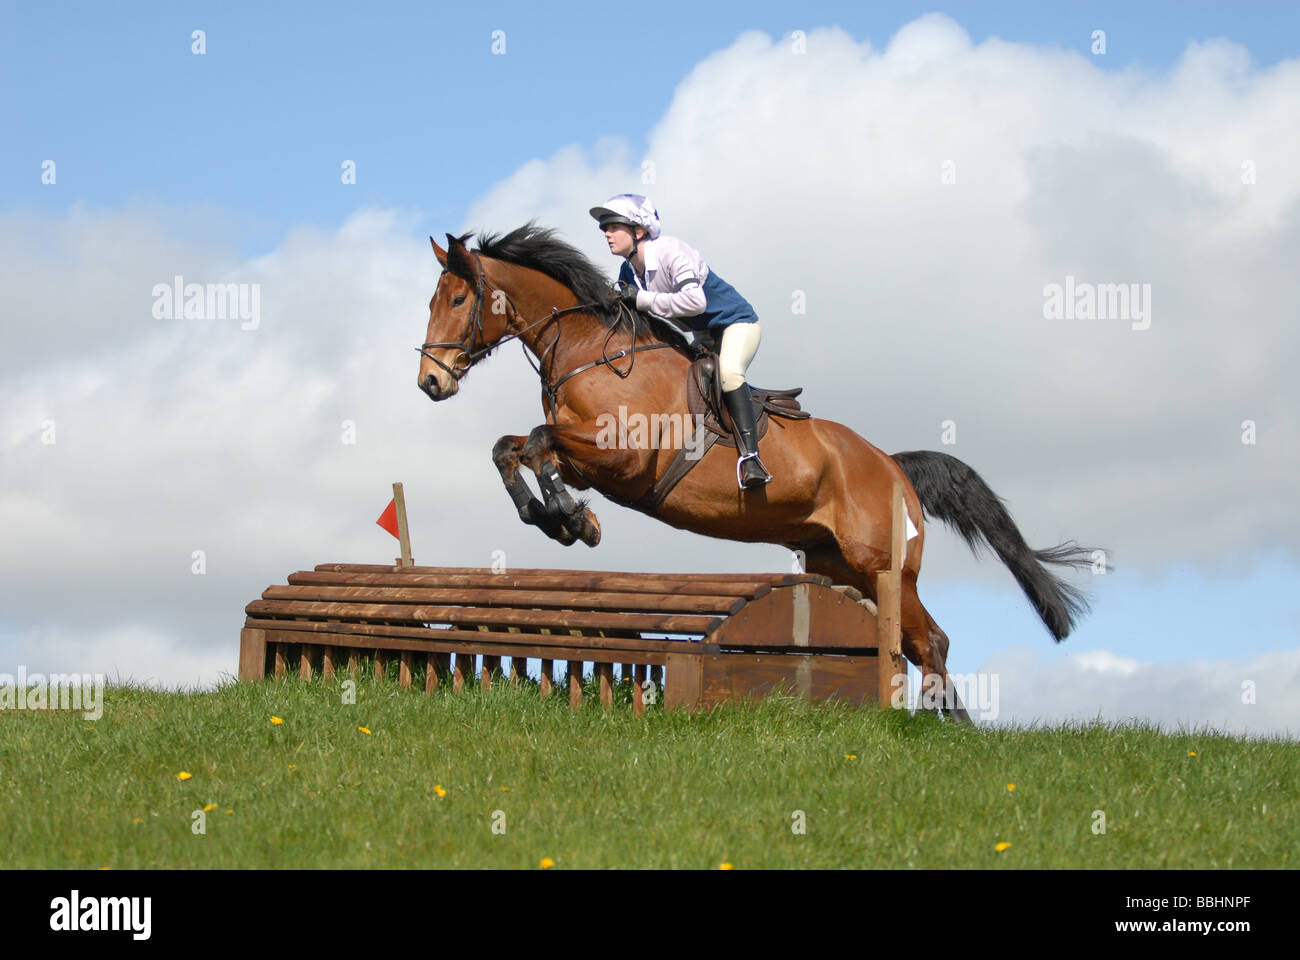 Horses jumping cross country